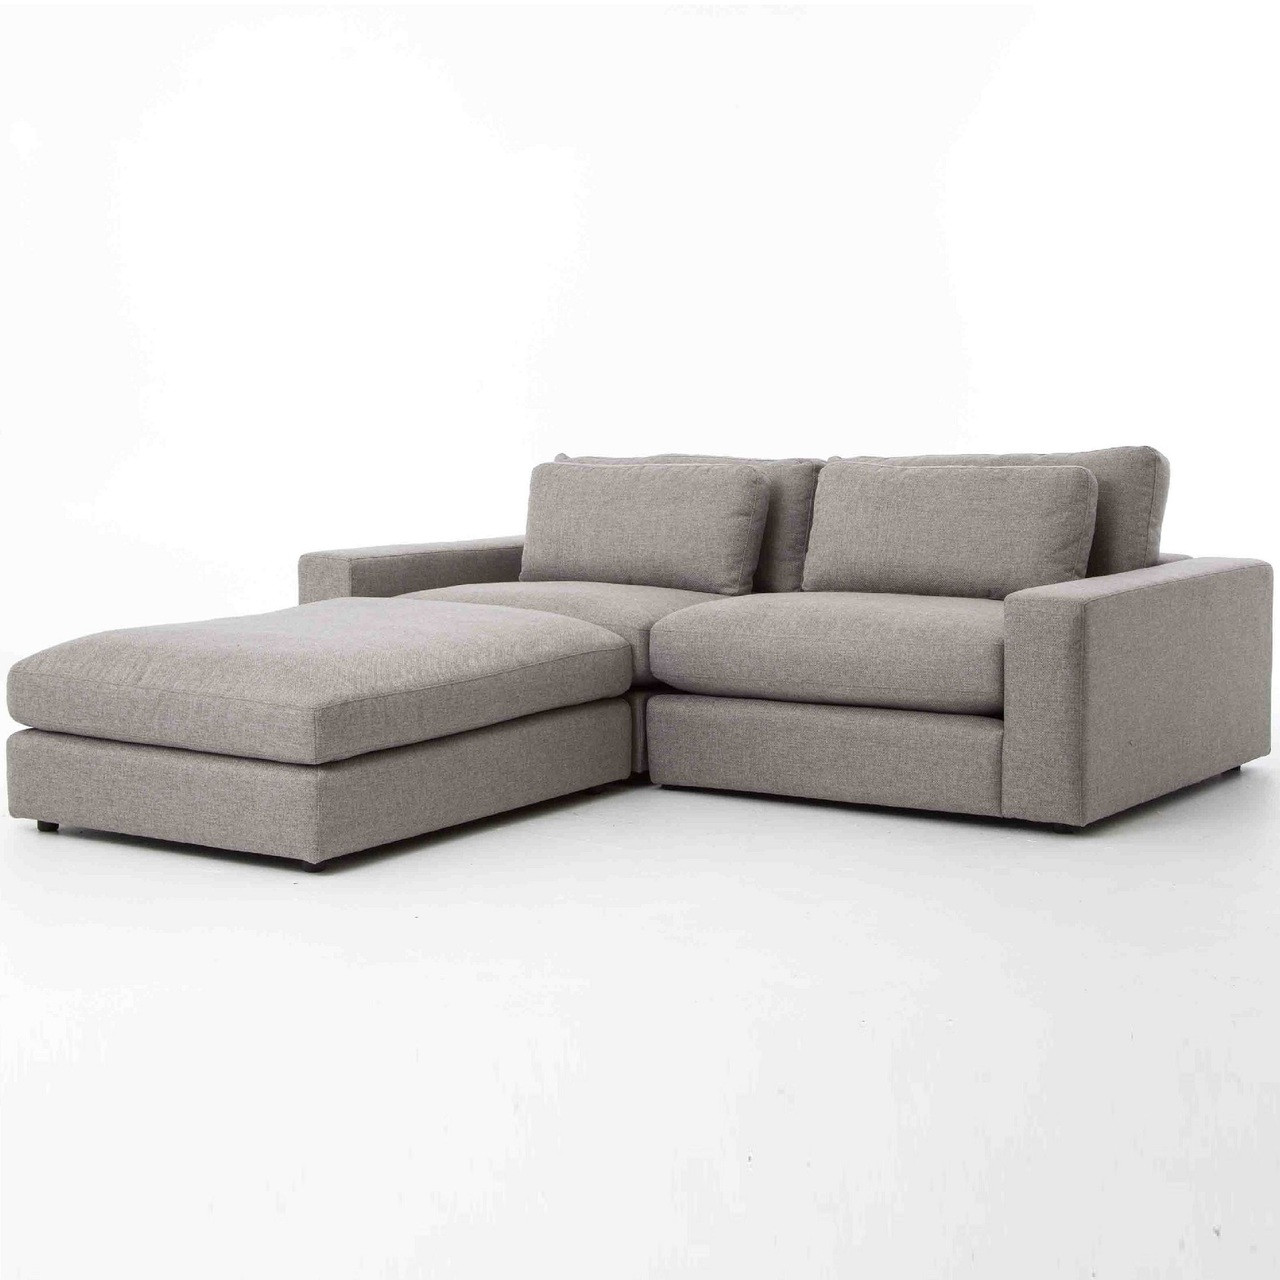 Bloor gray contemporary 3 piece small sectional sofa zin home bloor gray contemporary 3 piece small sectional sofa parisarafo Image collections